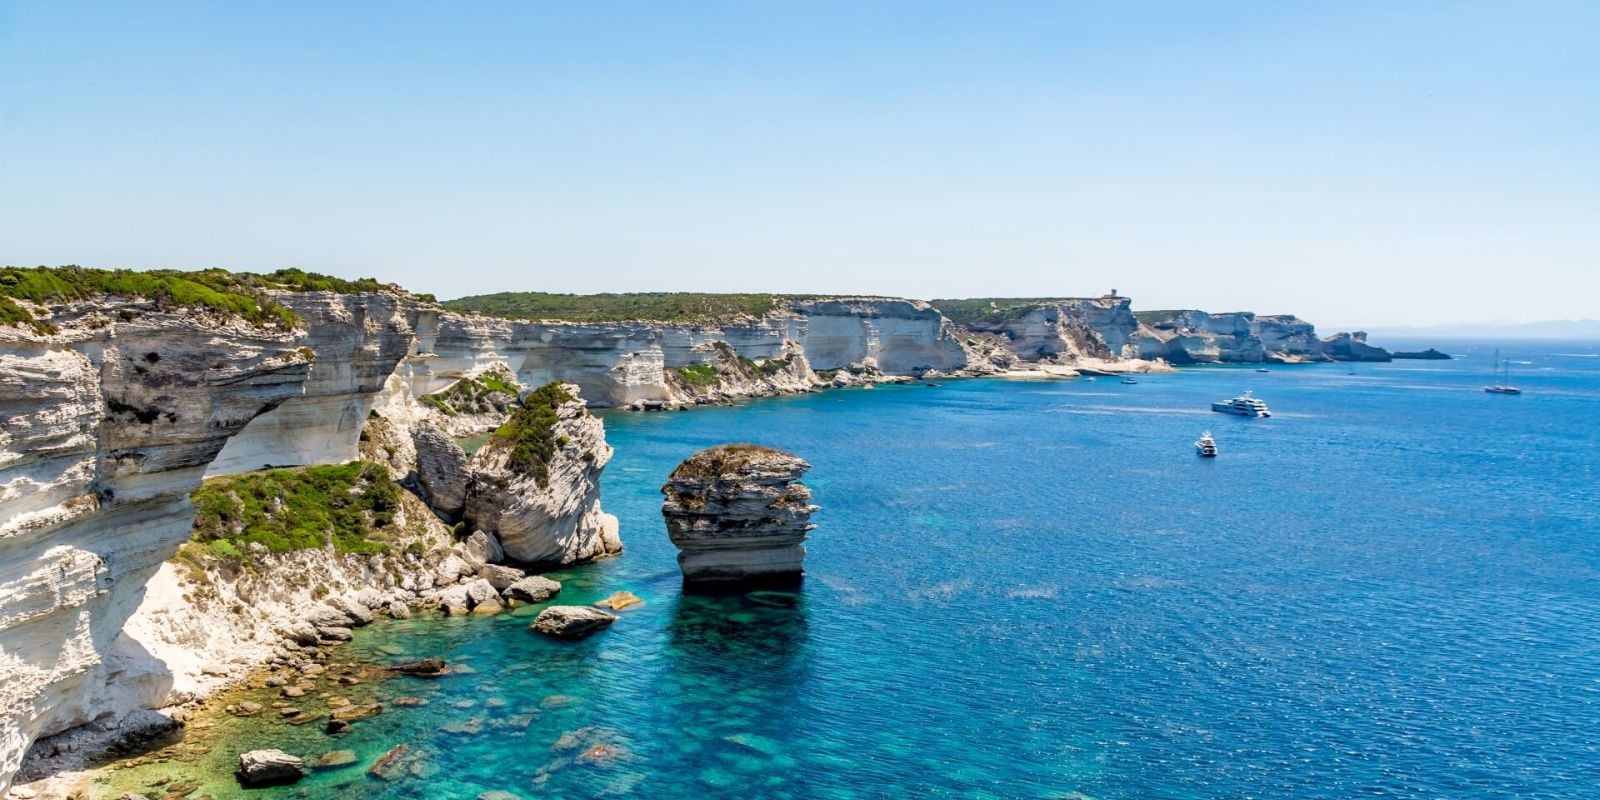 https://www.talamare.com/medias/Panorama of the cliffs of Bonifacio during a Corsica yacht charter